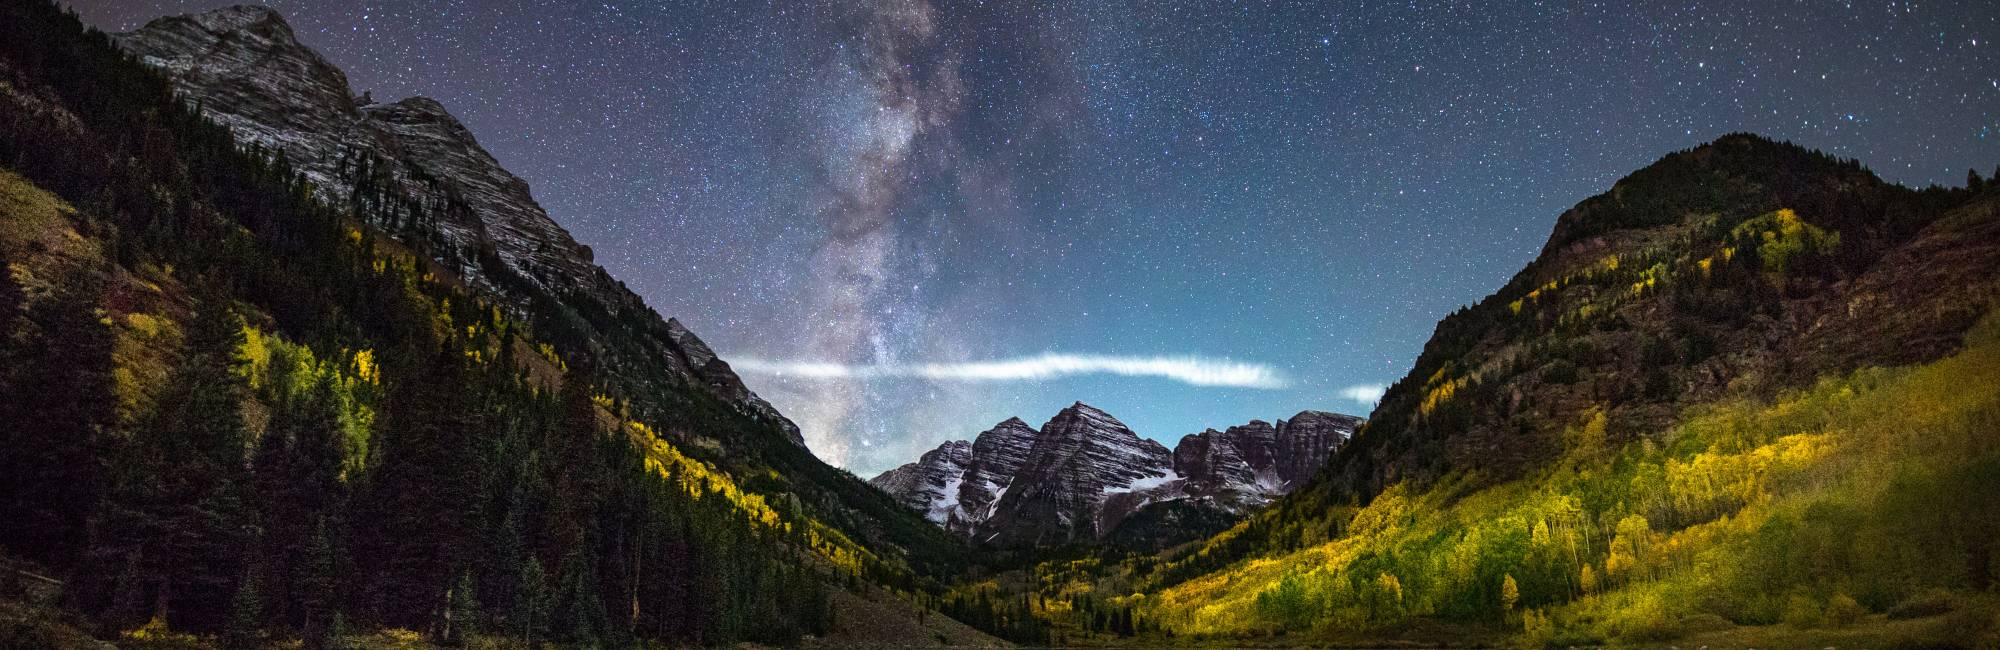 Milky Way over Maroon Bells.